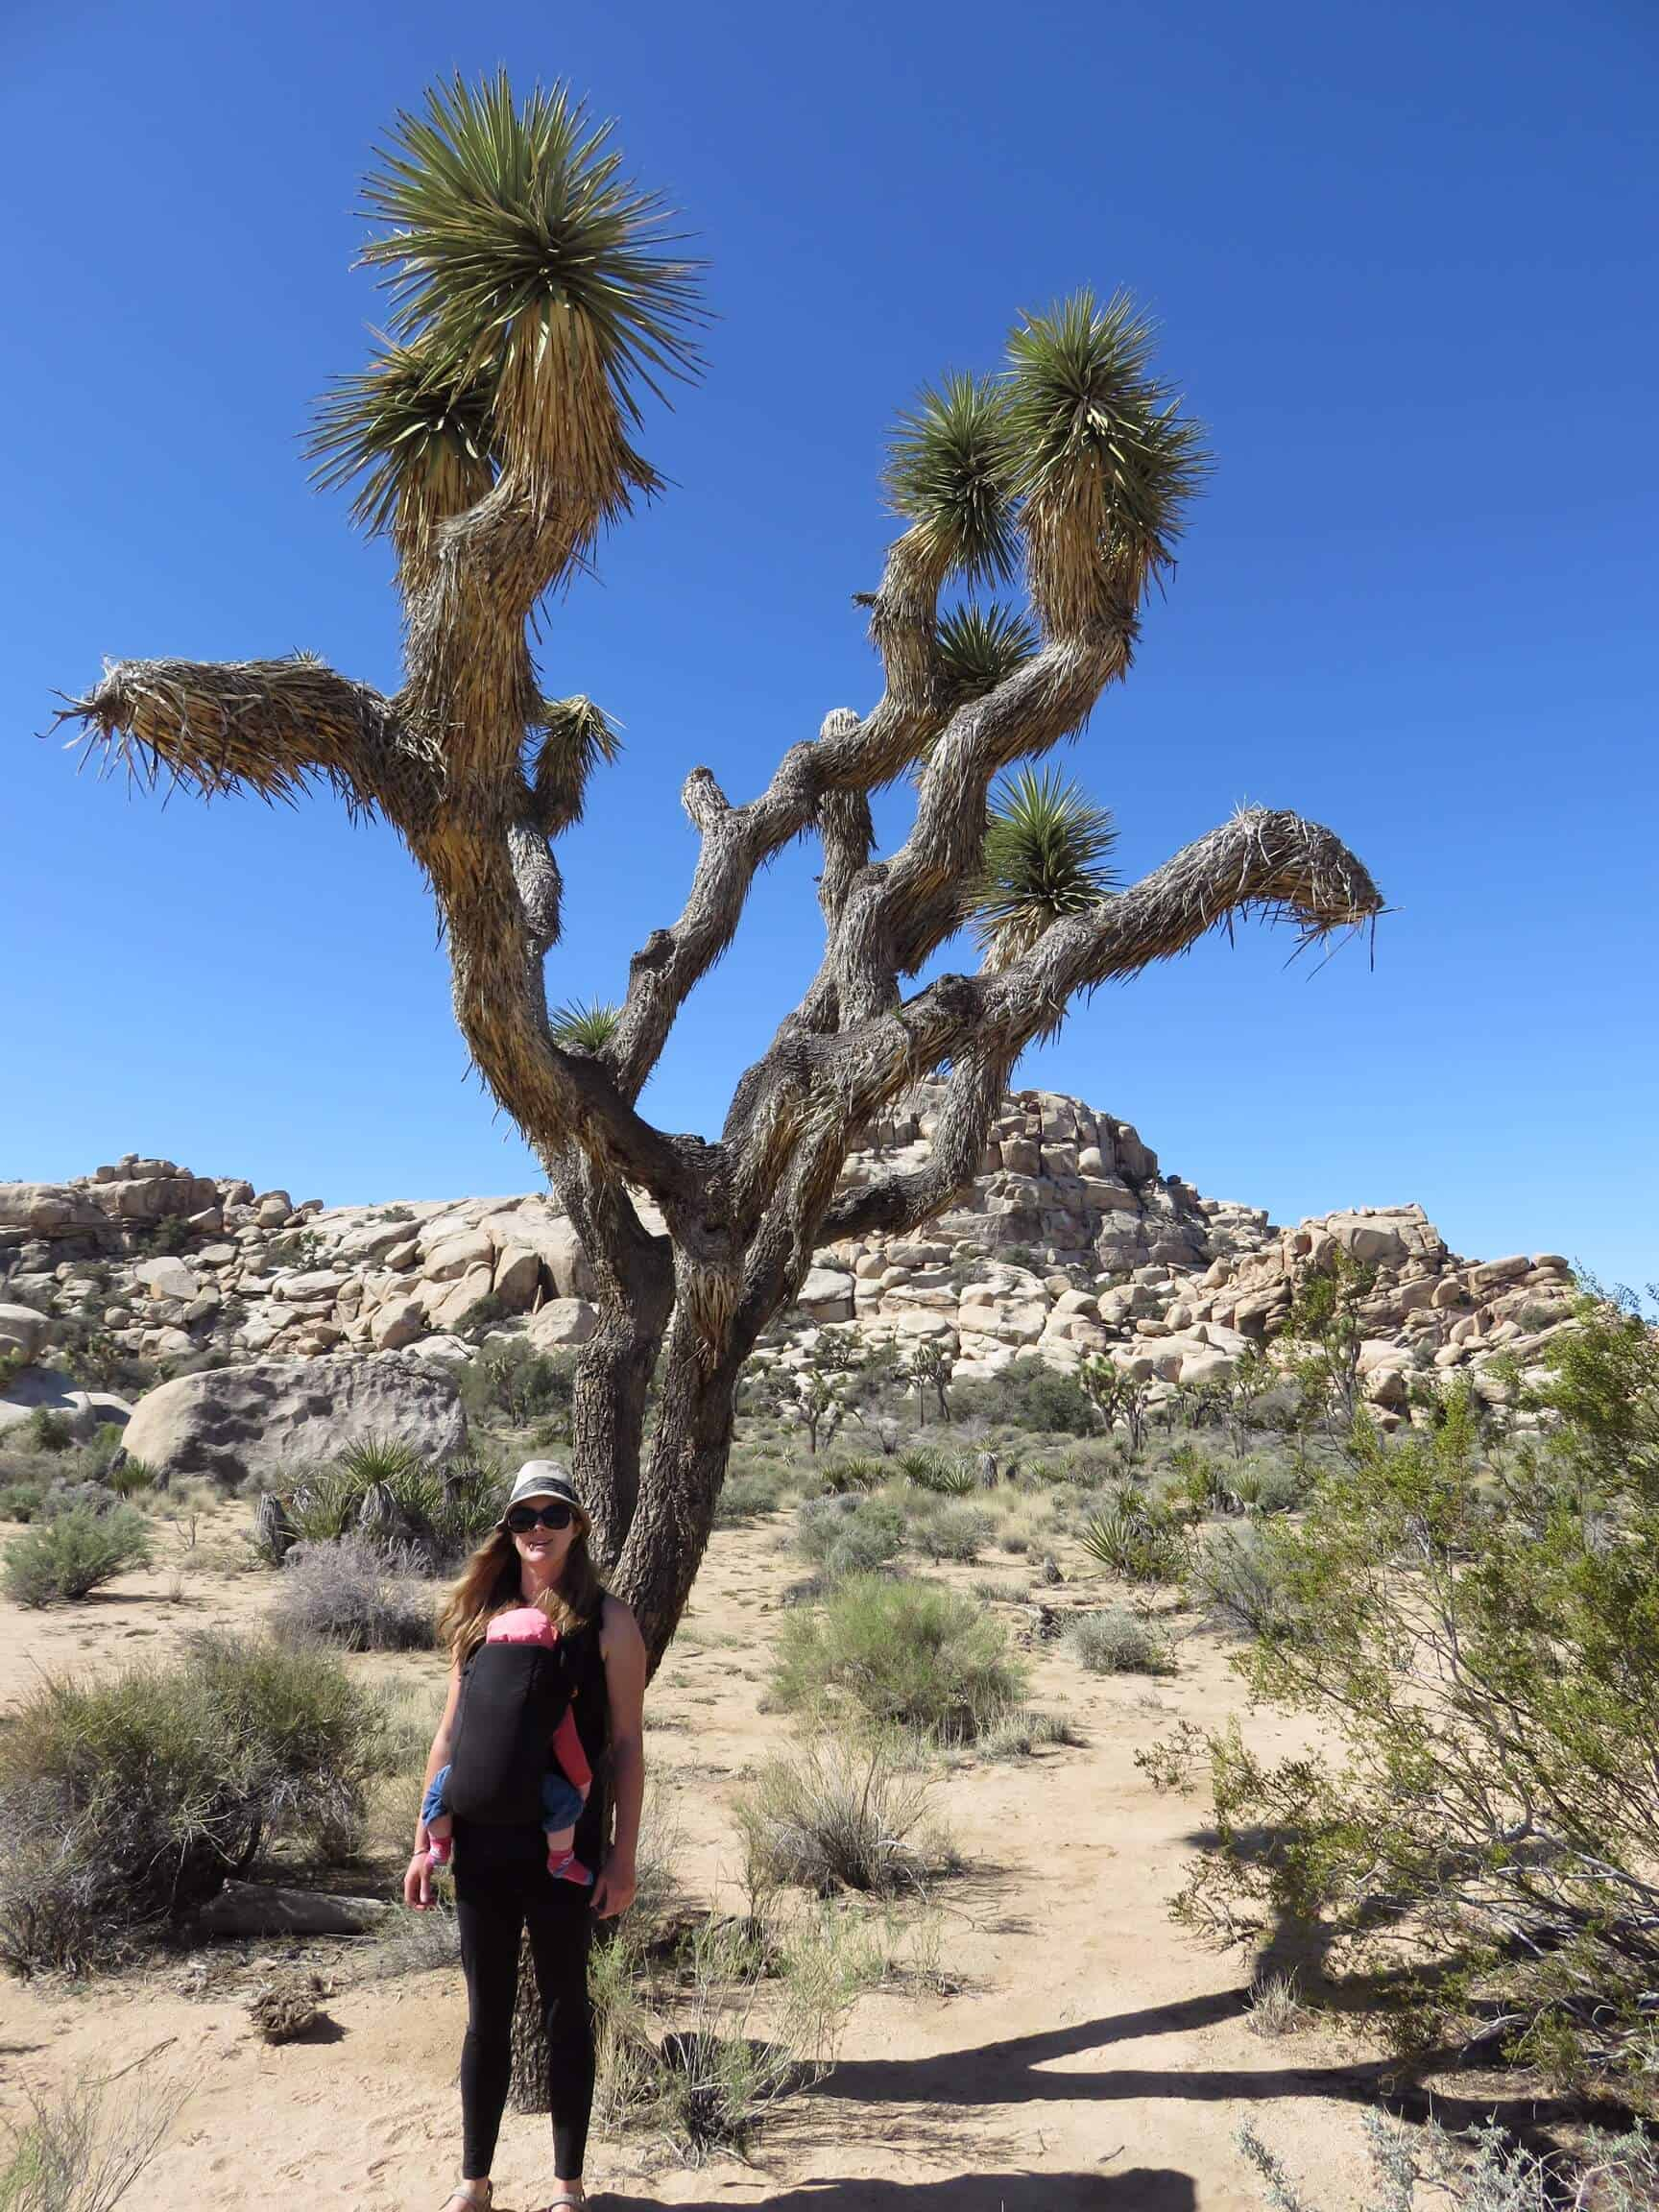 Visiting Joshua Tree National Park with toddlers